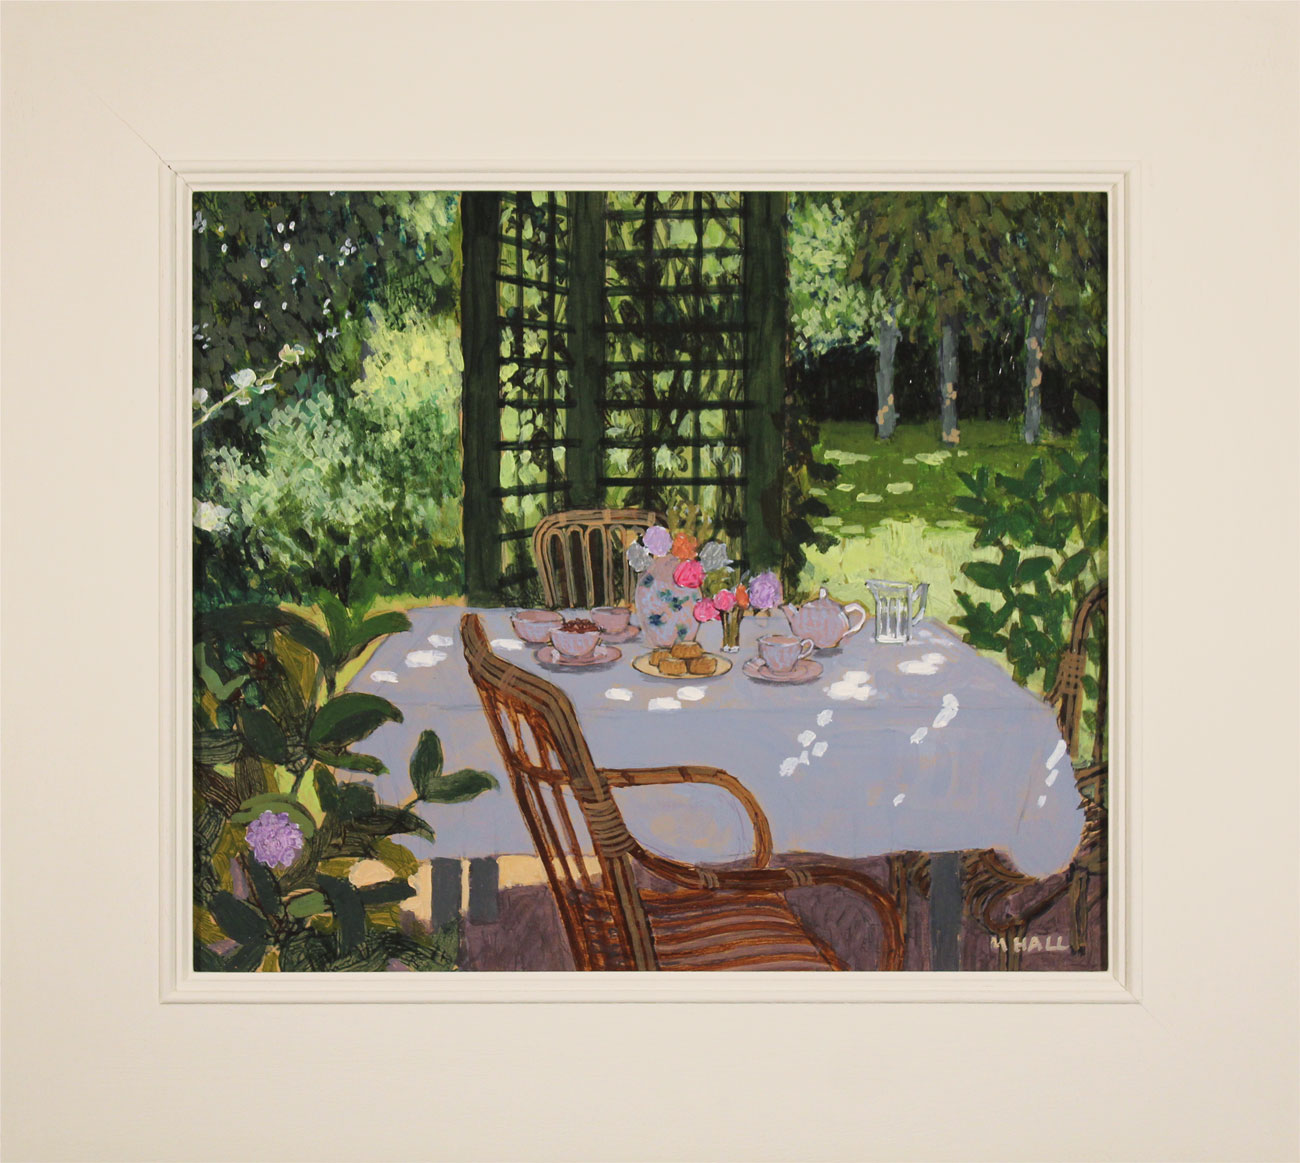 Mike Hall, Original acrylic painting on board, Table Set for Tea. Click to enlarge